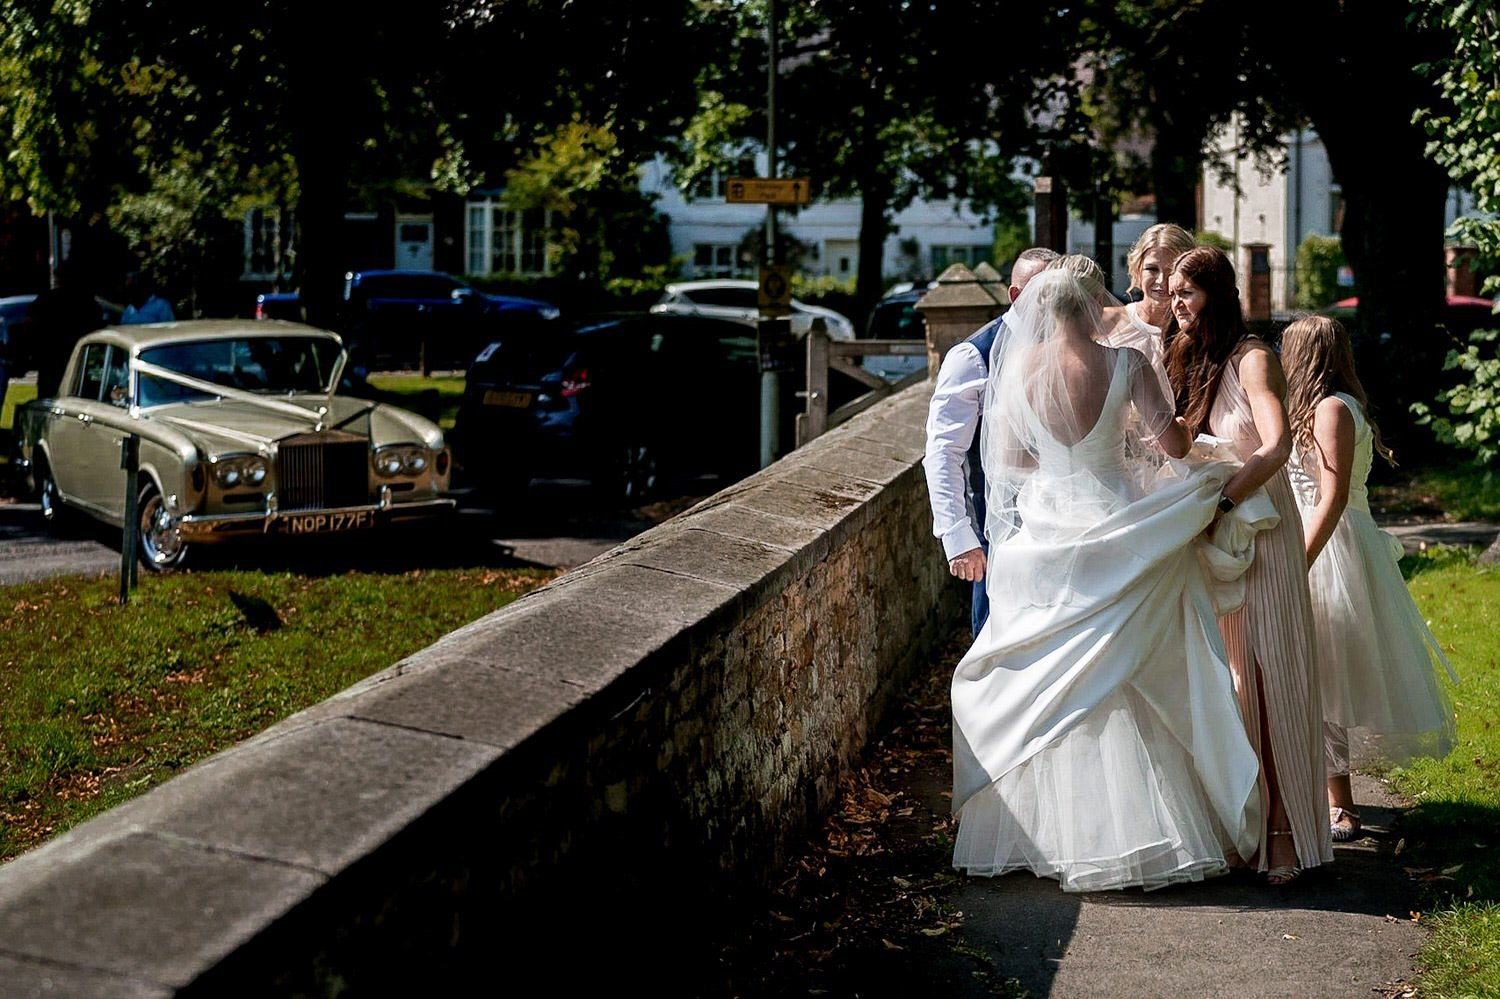 Great Bowden Parish Church Lockwood Weddings Photography bride huddled with her bridesmaids outside the church before the ceremony wedding car in the background